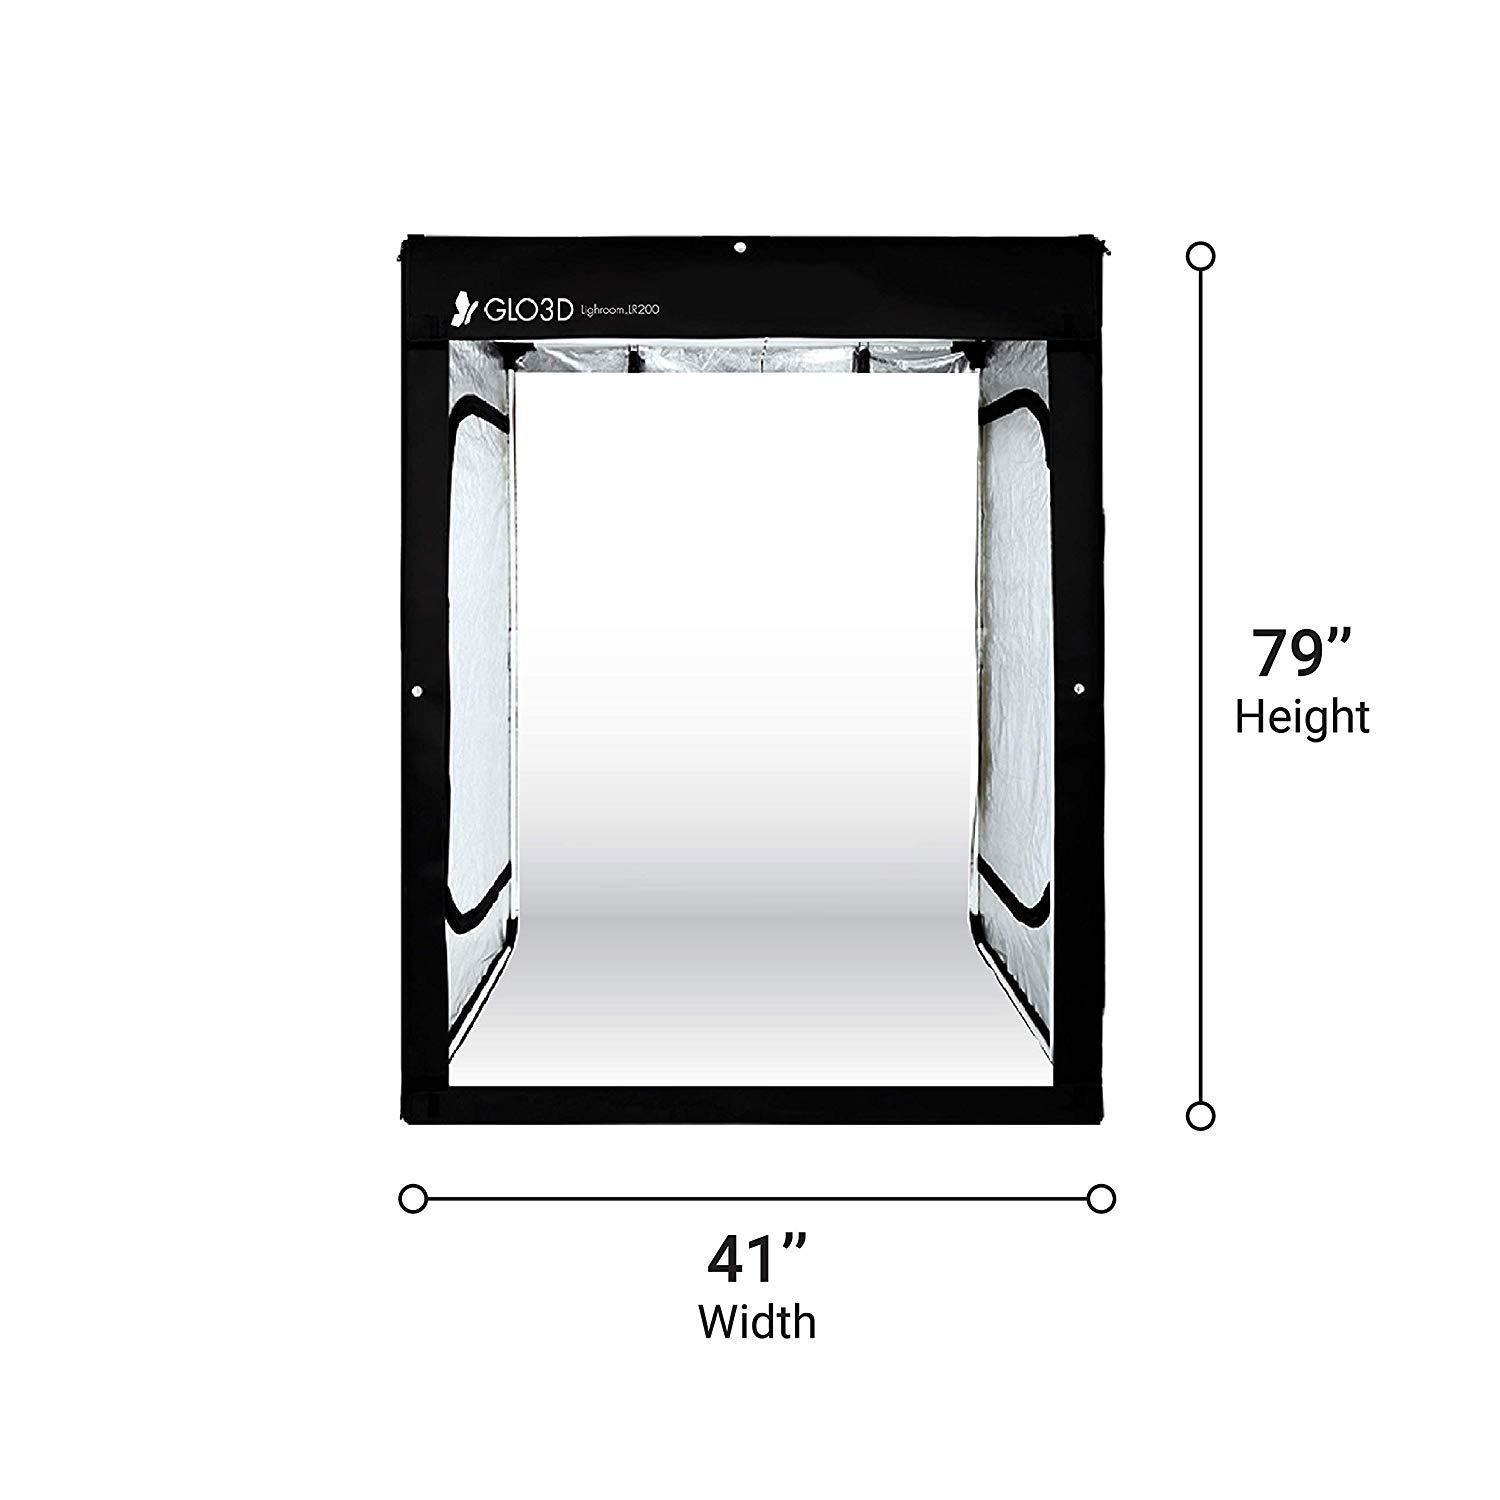 Glo3D LB200 Foldable Photo Studio Lightbox - 41''x 79'' Portable LED Photography Tent for Clothes & Models and Many More by Glo3D